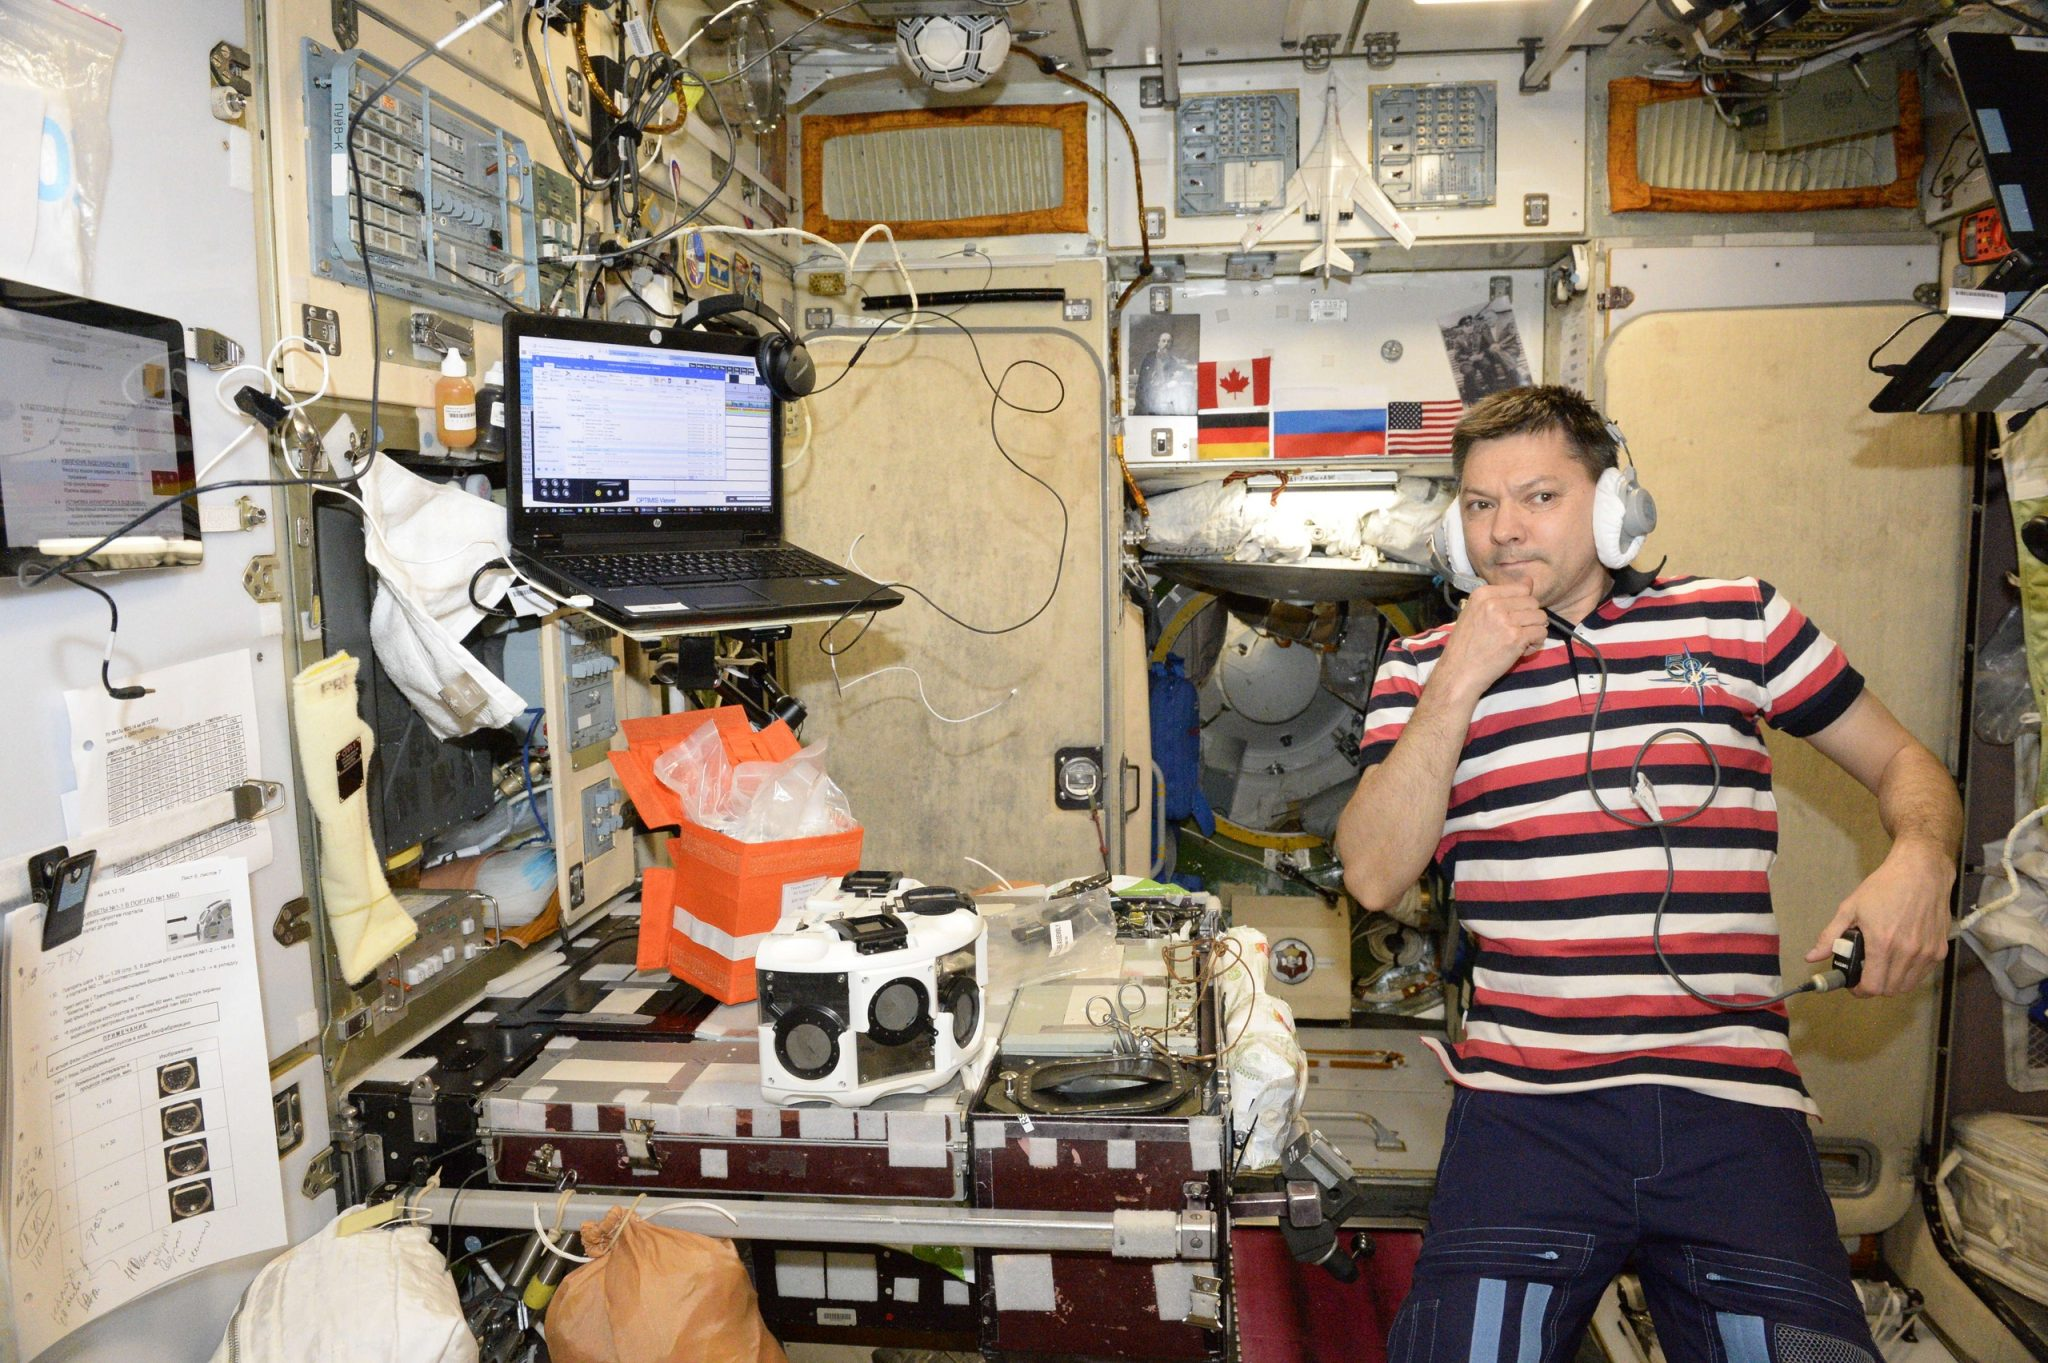 Russian cosmonaut Oleg Kononenko using OrganAut in the ISS. Photo via 3D Bioprinting Solutions.